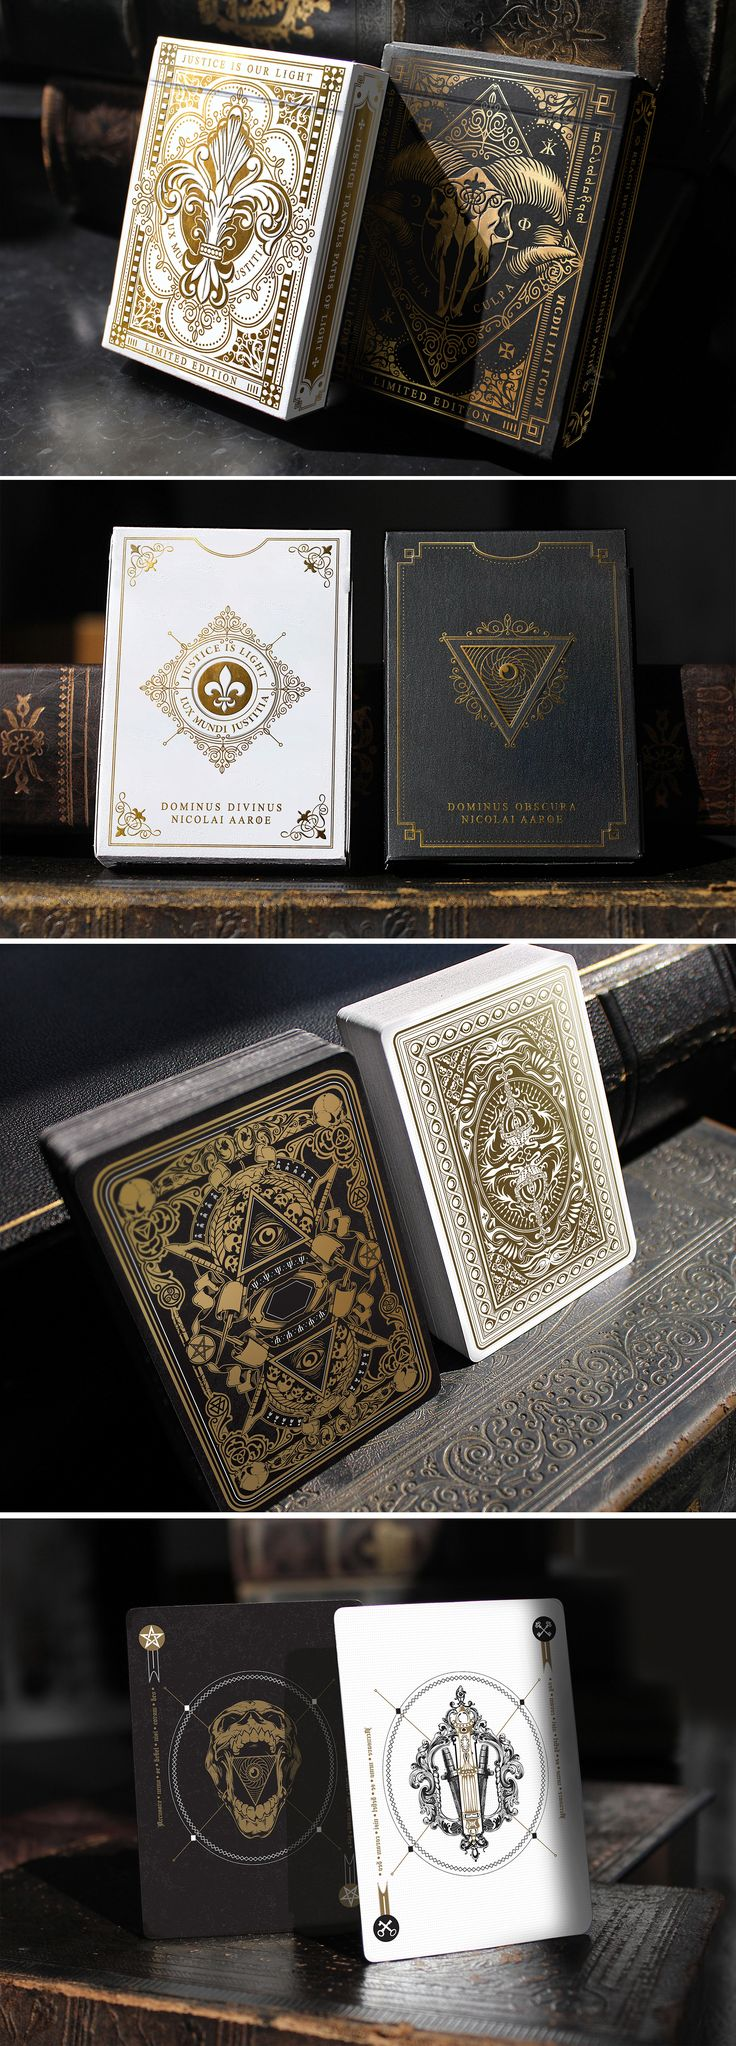 9da12d274e7d7a808545c77a815fc806  the darkness playing cards - Dominus Playing Cards by Nicolai Aarøe  2 limited ed. decks with deluxe feature...